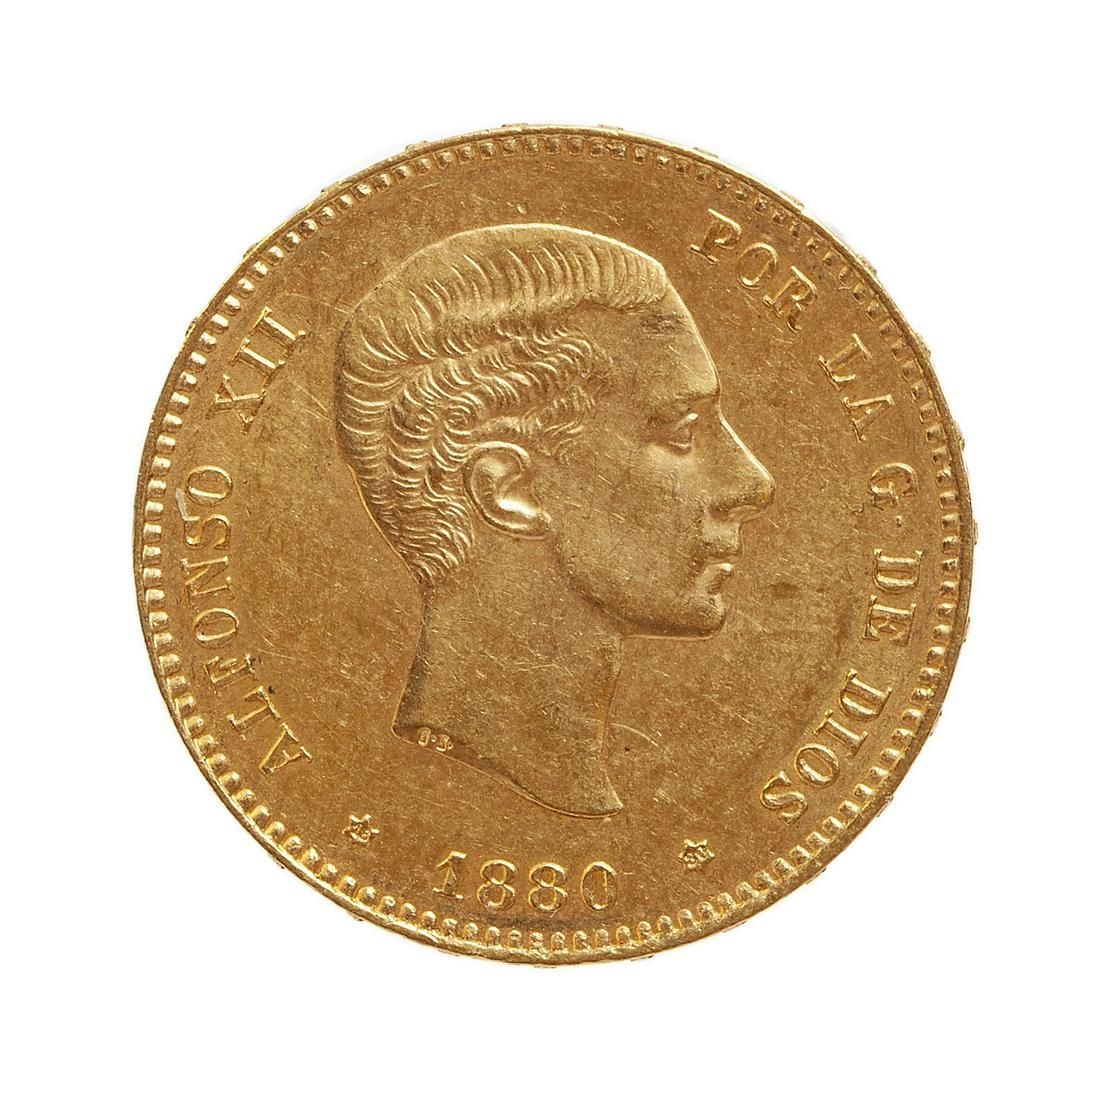 Coin of 25 pesetas of Alfonso XII, 1880, mint Madrid.